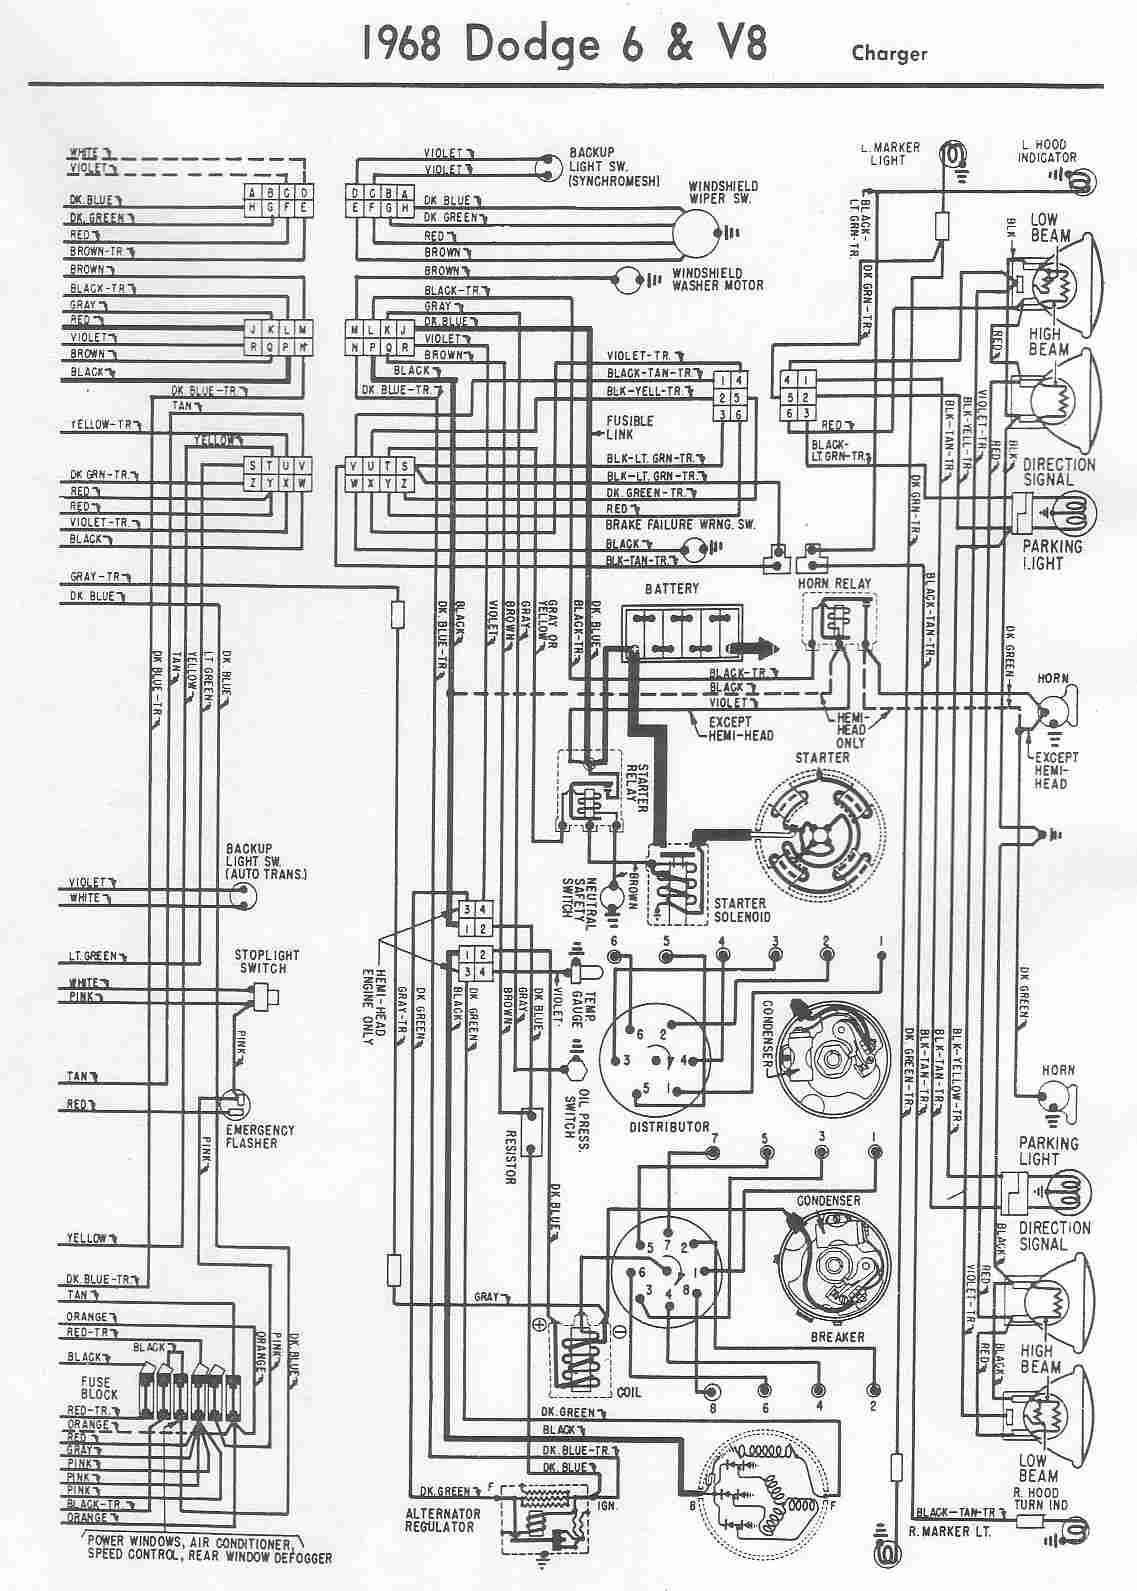 Chrysler 300 Wiring Diagrams Free Data Schema 1968 Chevy Van Diagram 1972 Truck Pdf Simple 2007 Schematics